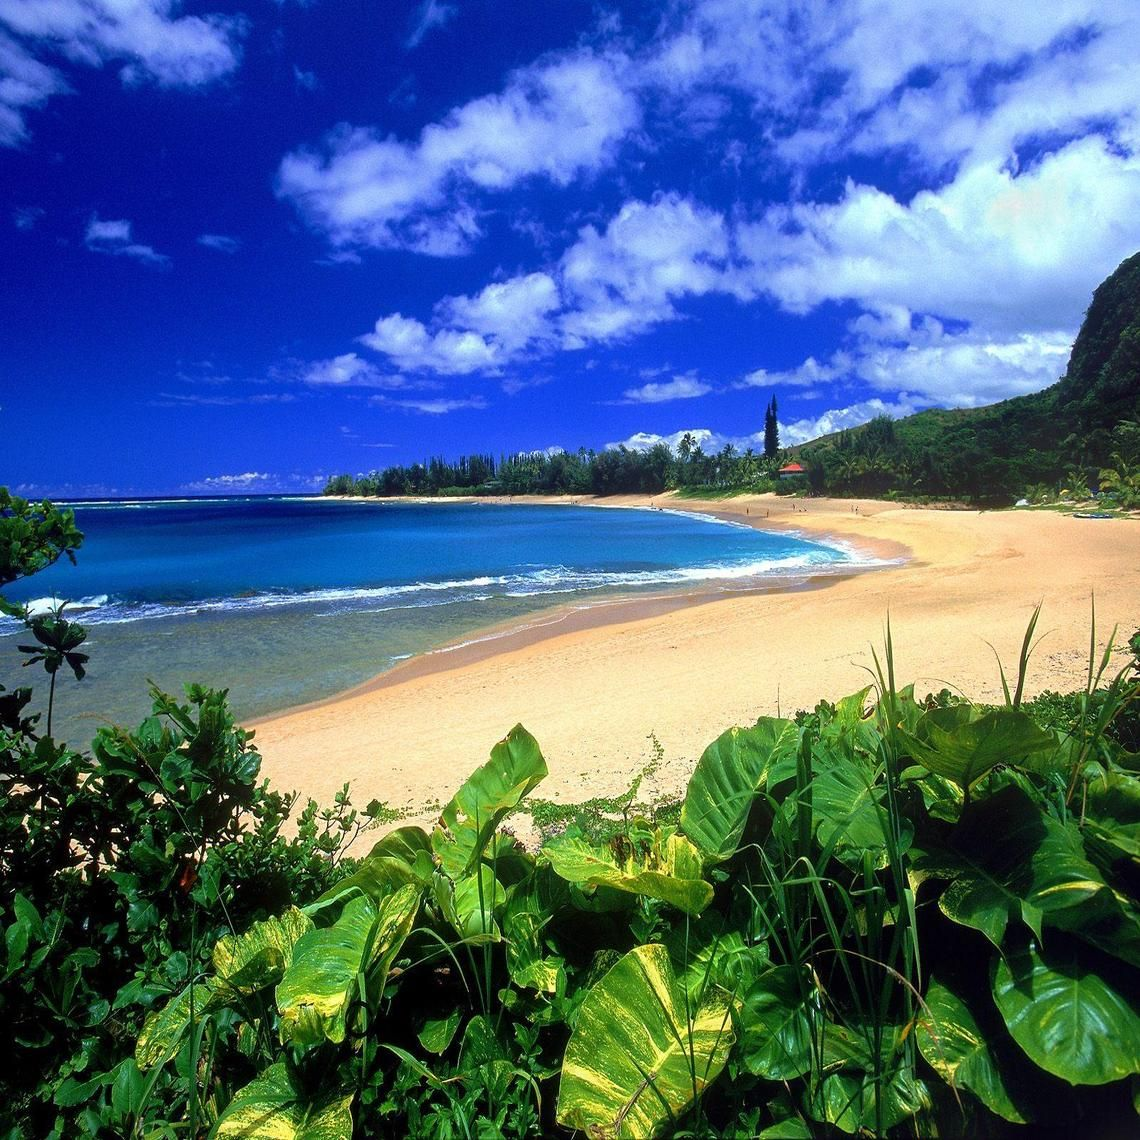 Kauai Beach, Hawaii